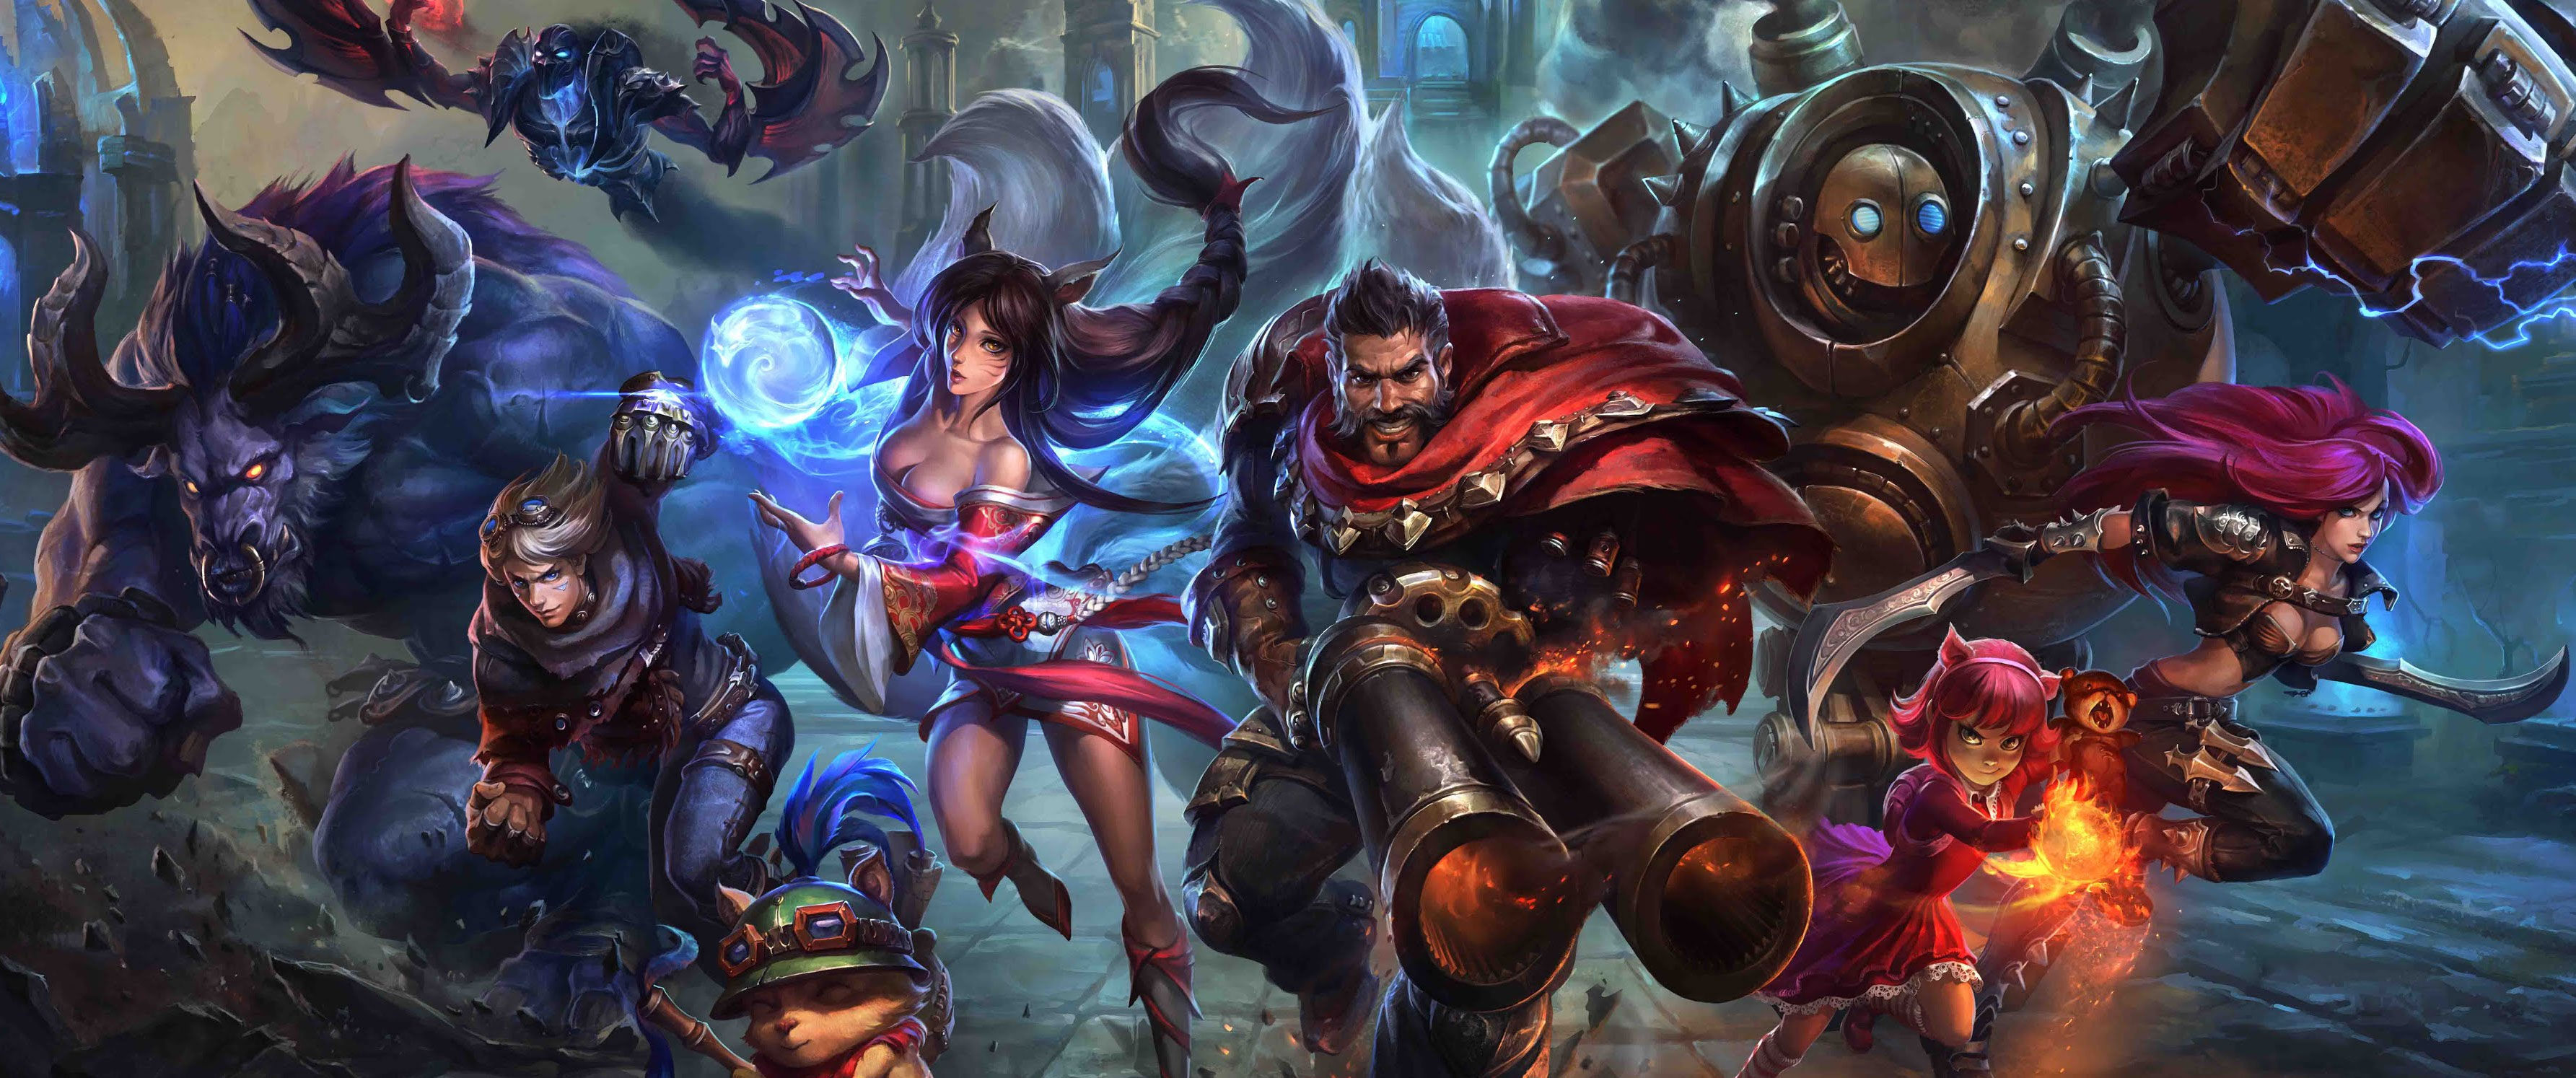 Frases De Los Campeones De League Of Legends